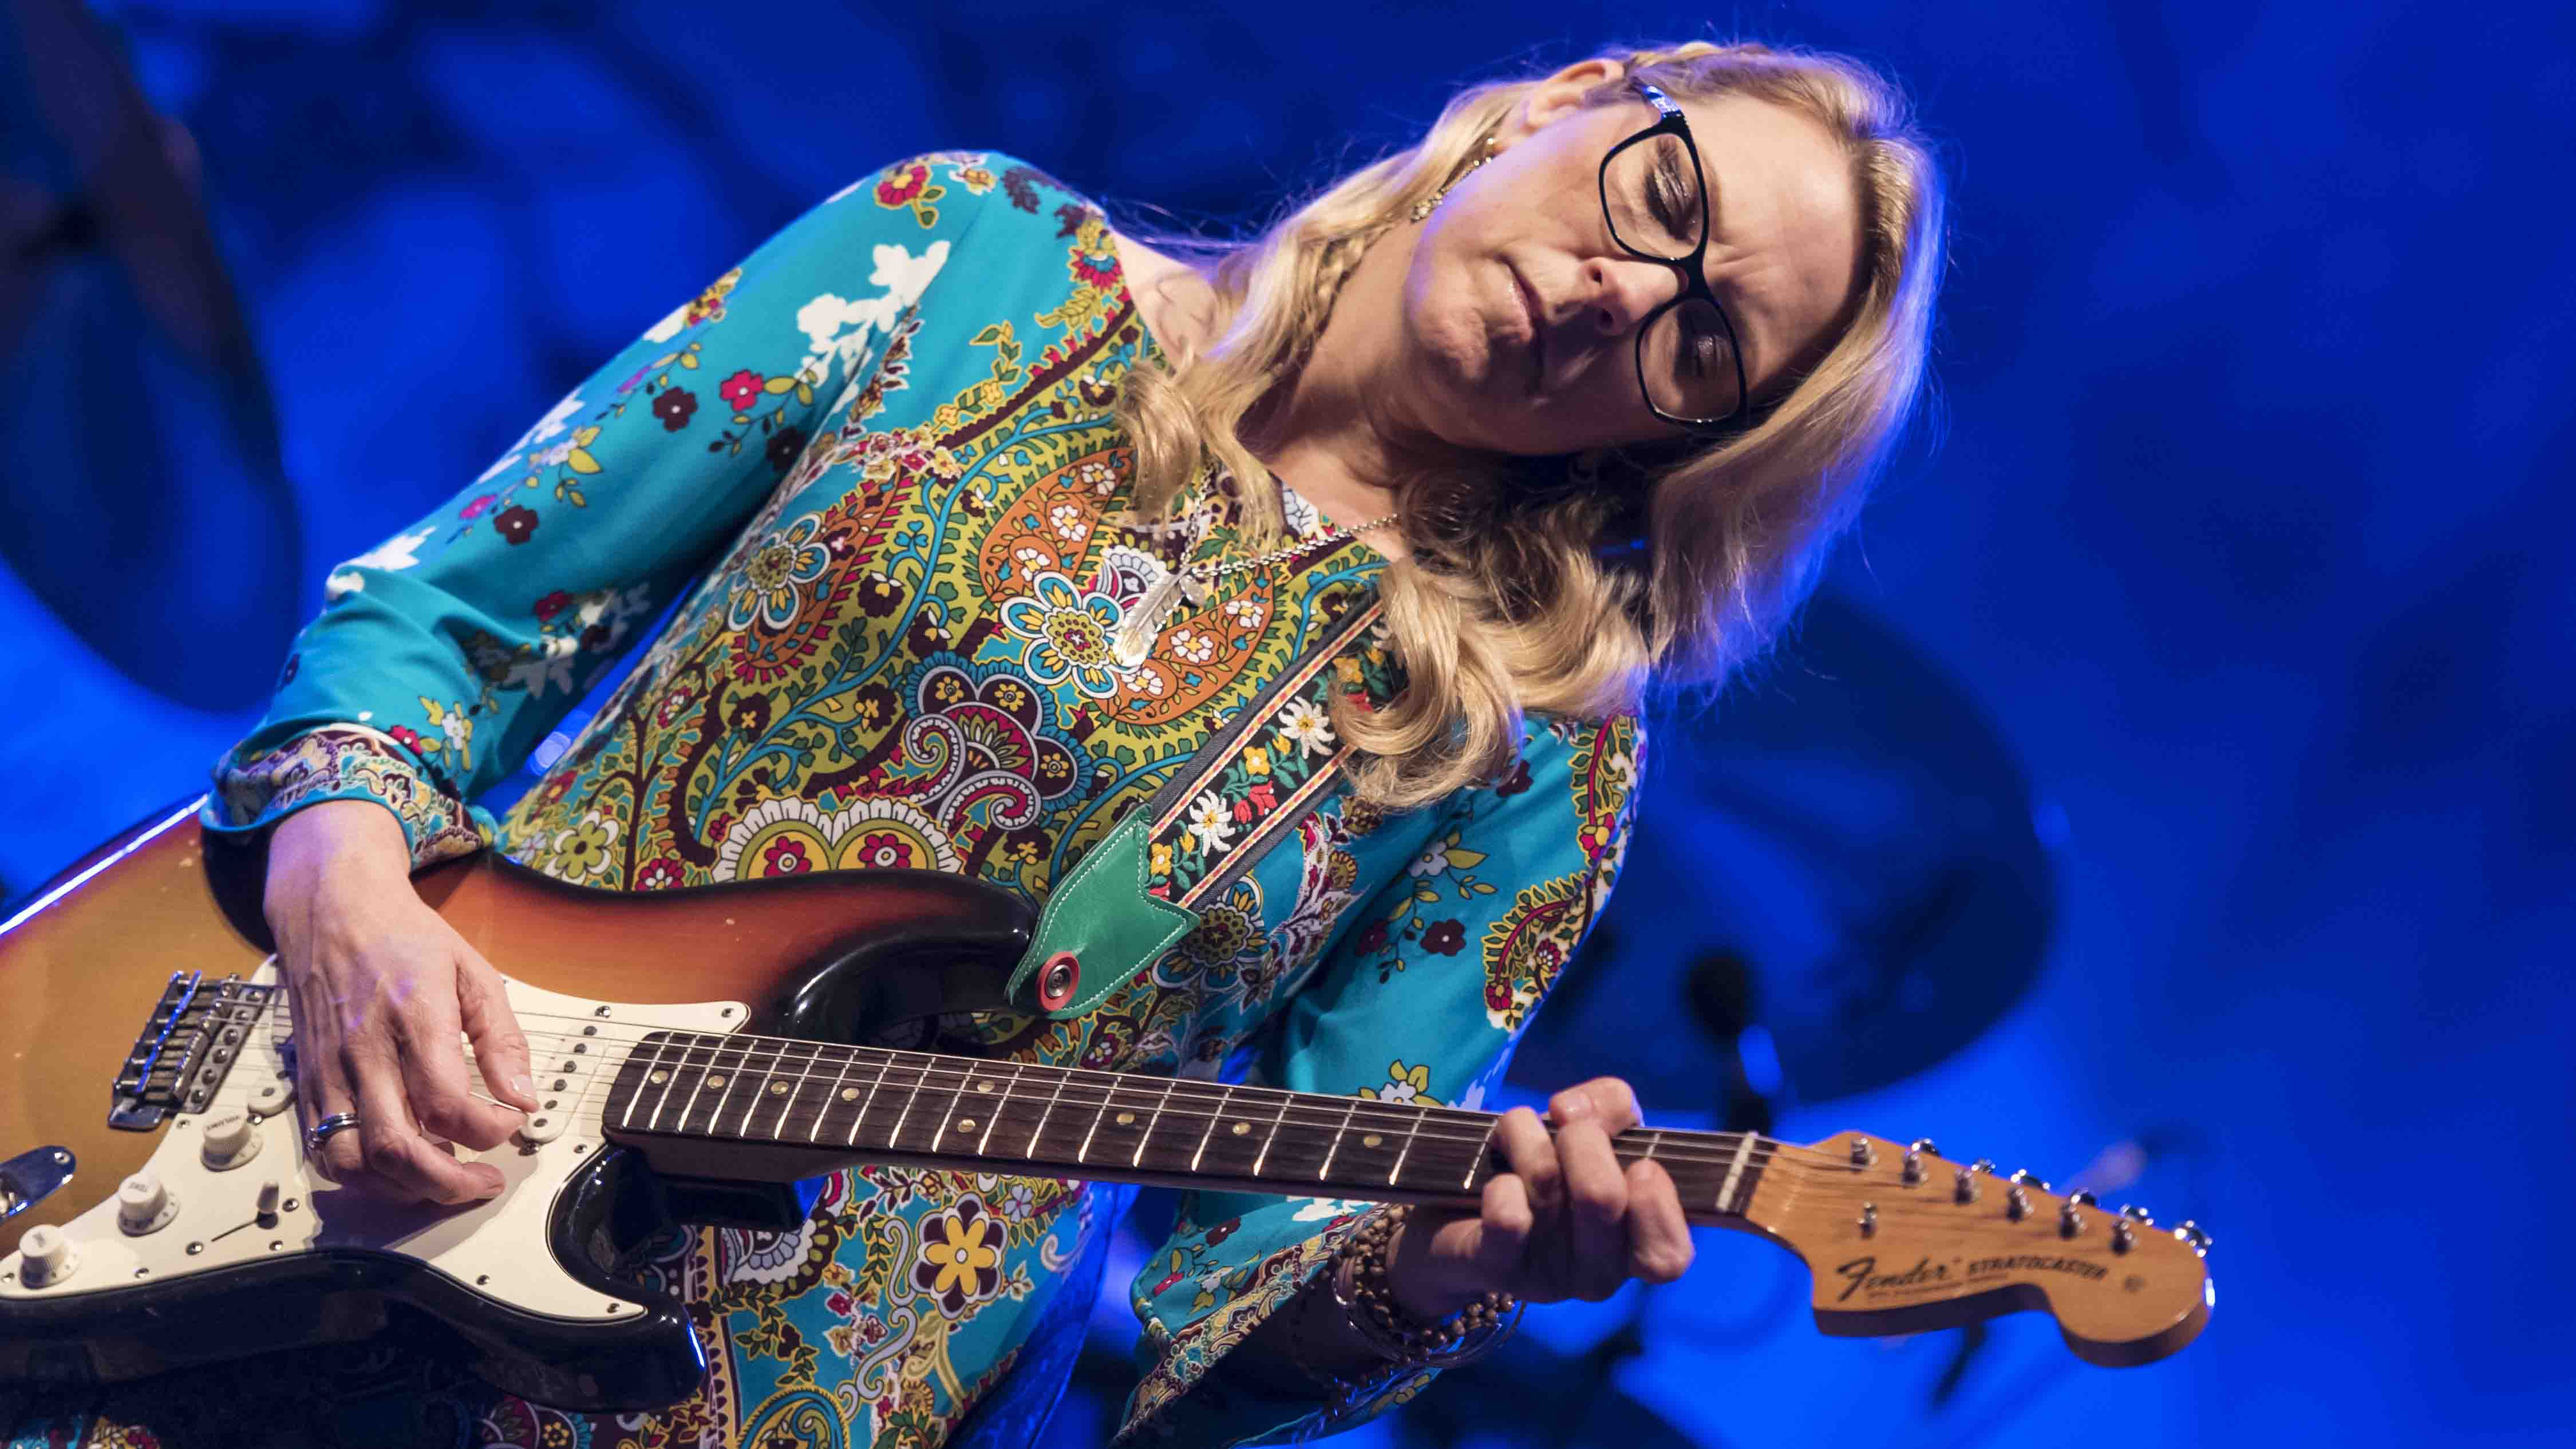 15 inspirational guitarists (who happen to be women